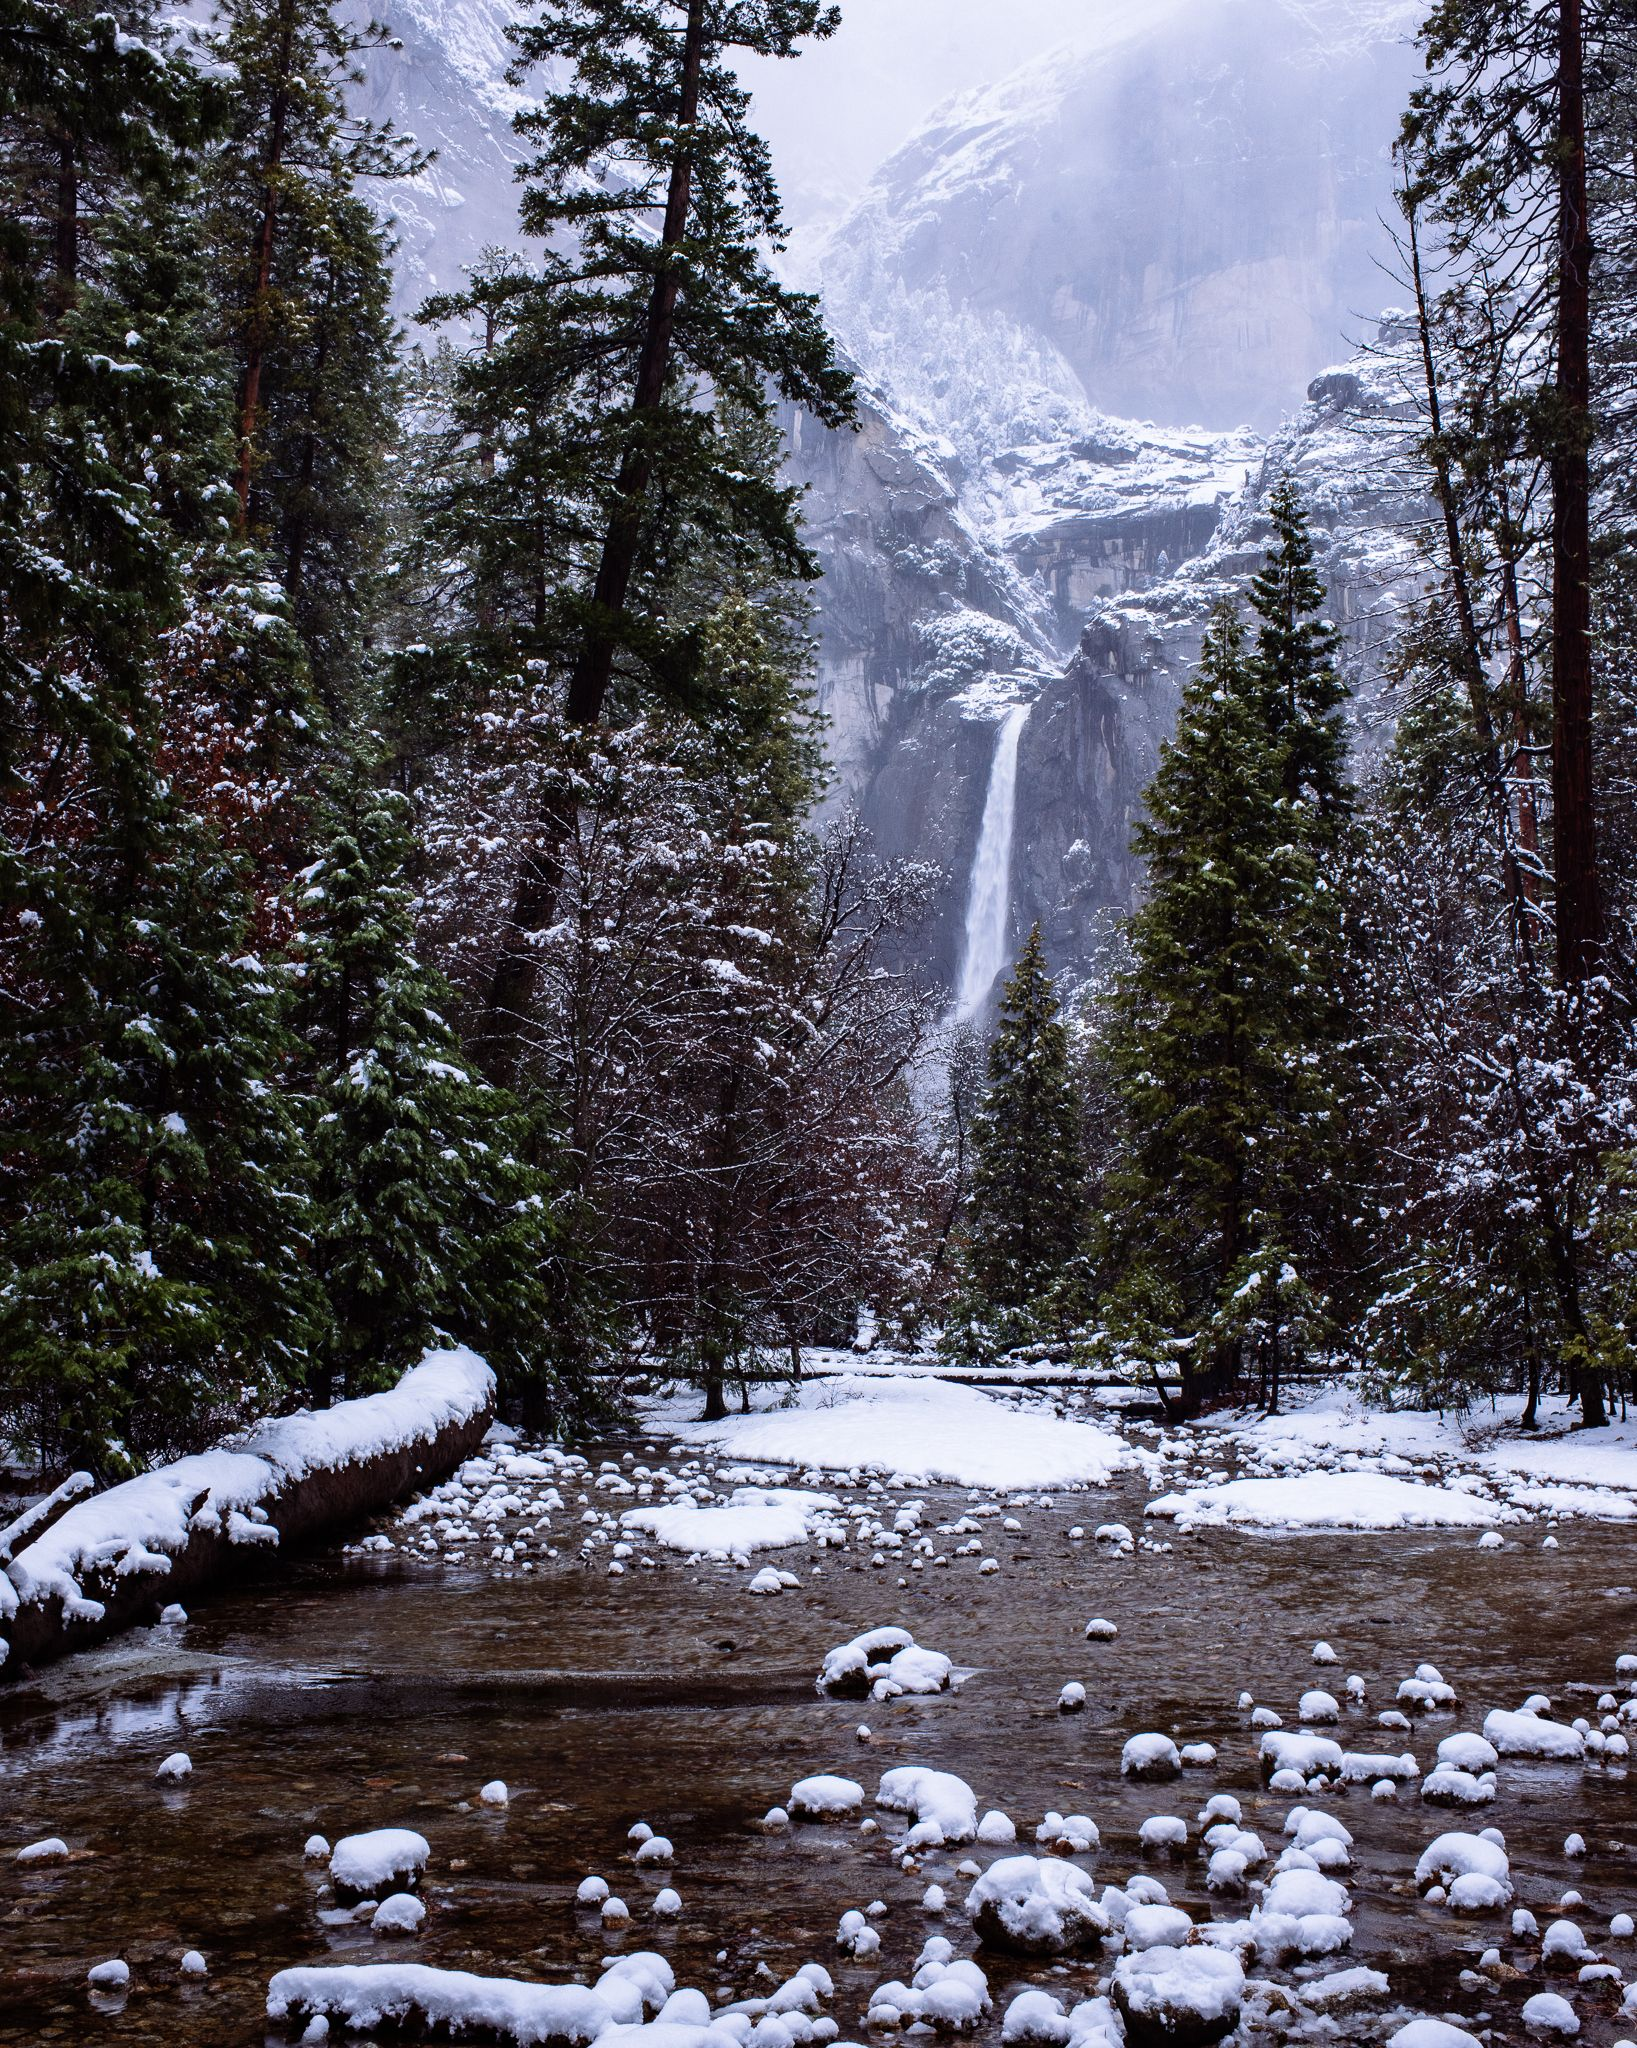 Yosemite creek and Lower Yosemite Falls from this past